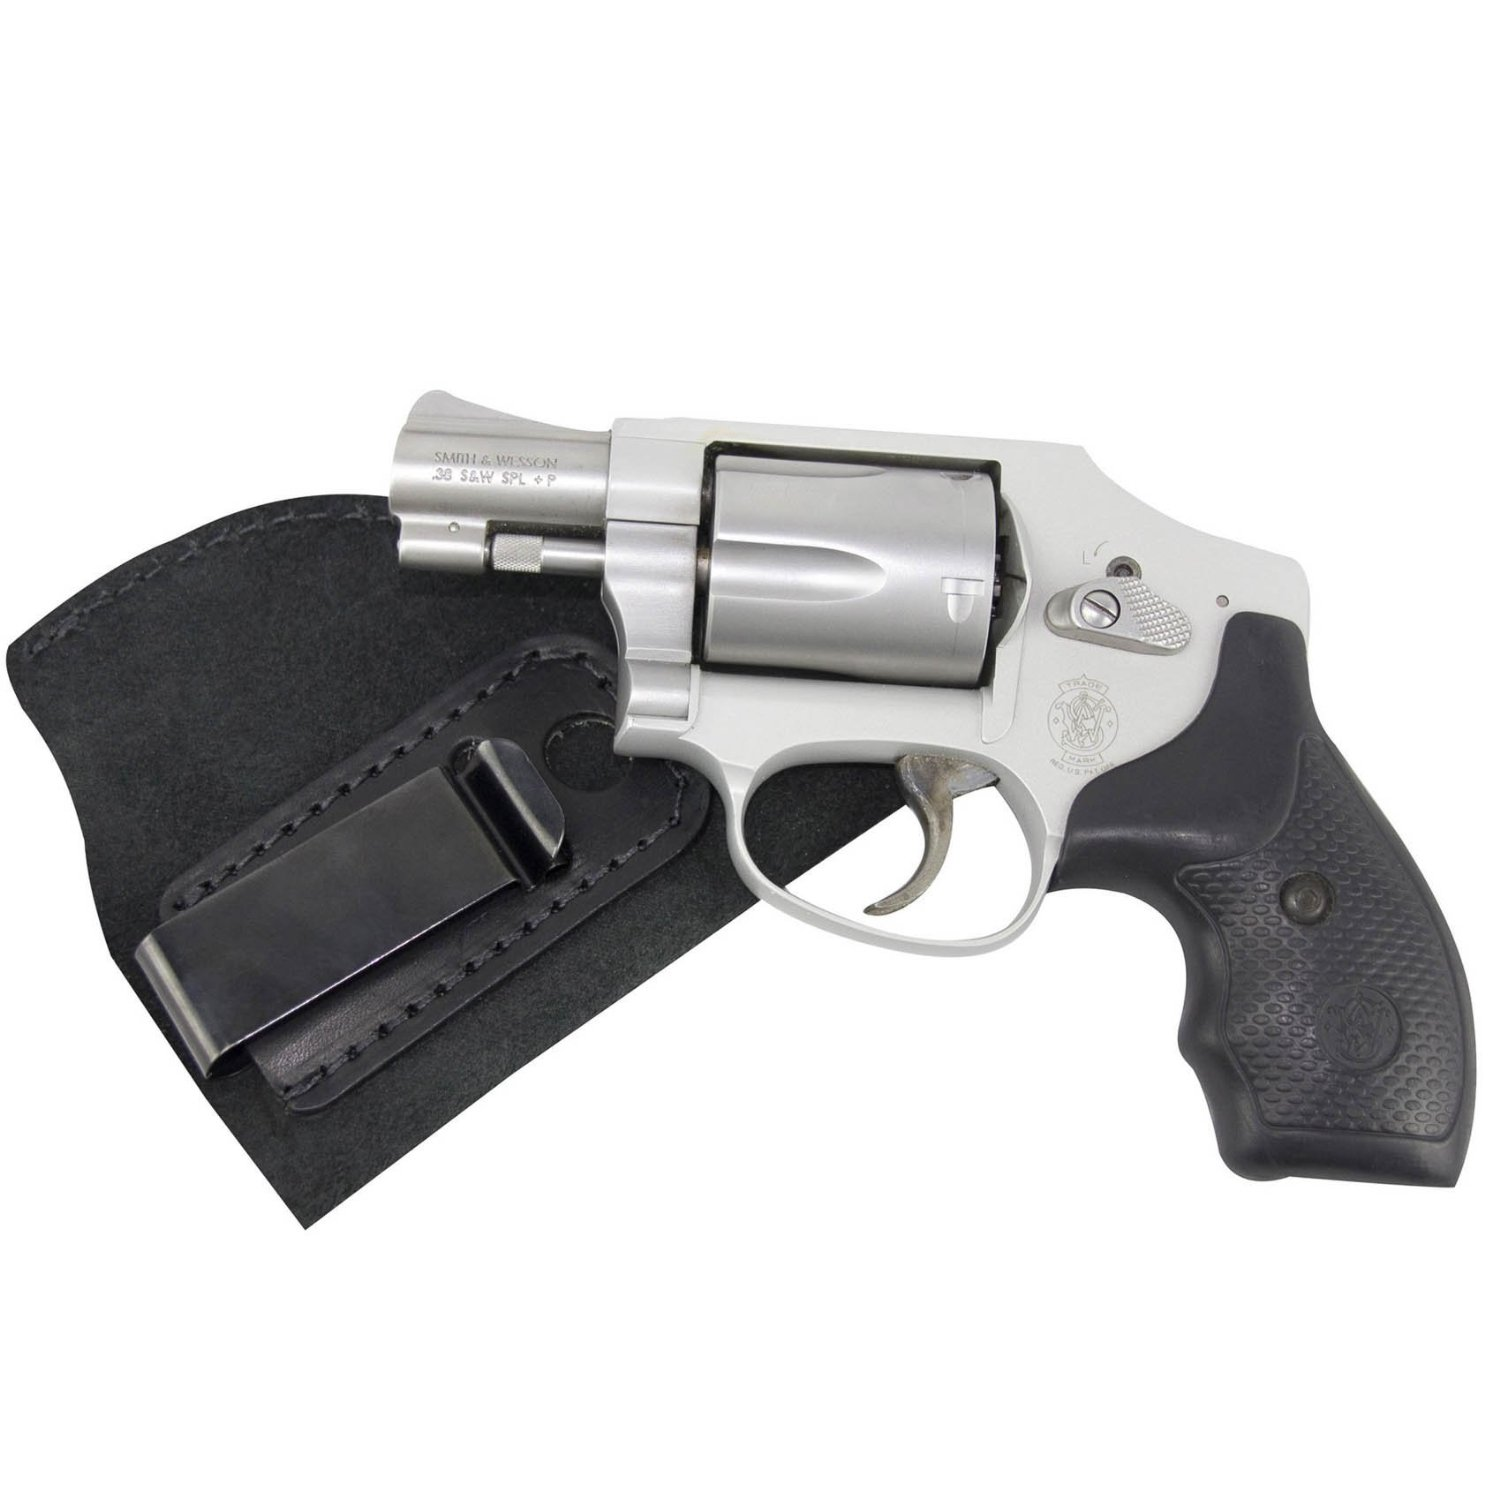 Cheap Iwb Leather Holster, find Iwb Leather Holster deals on